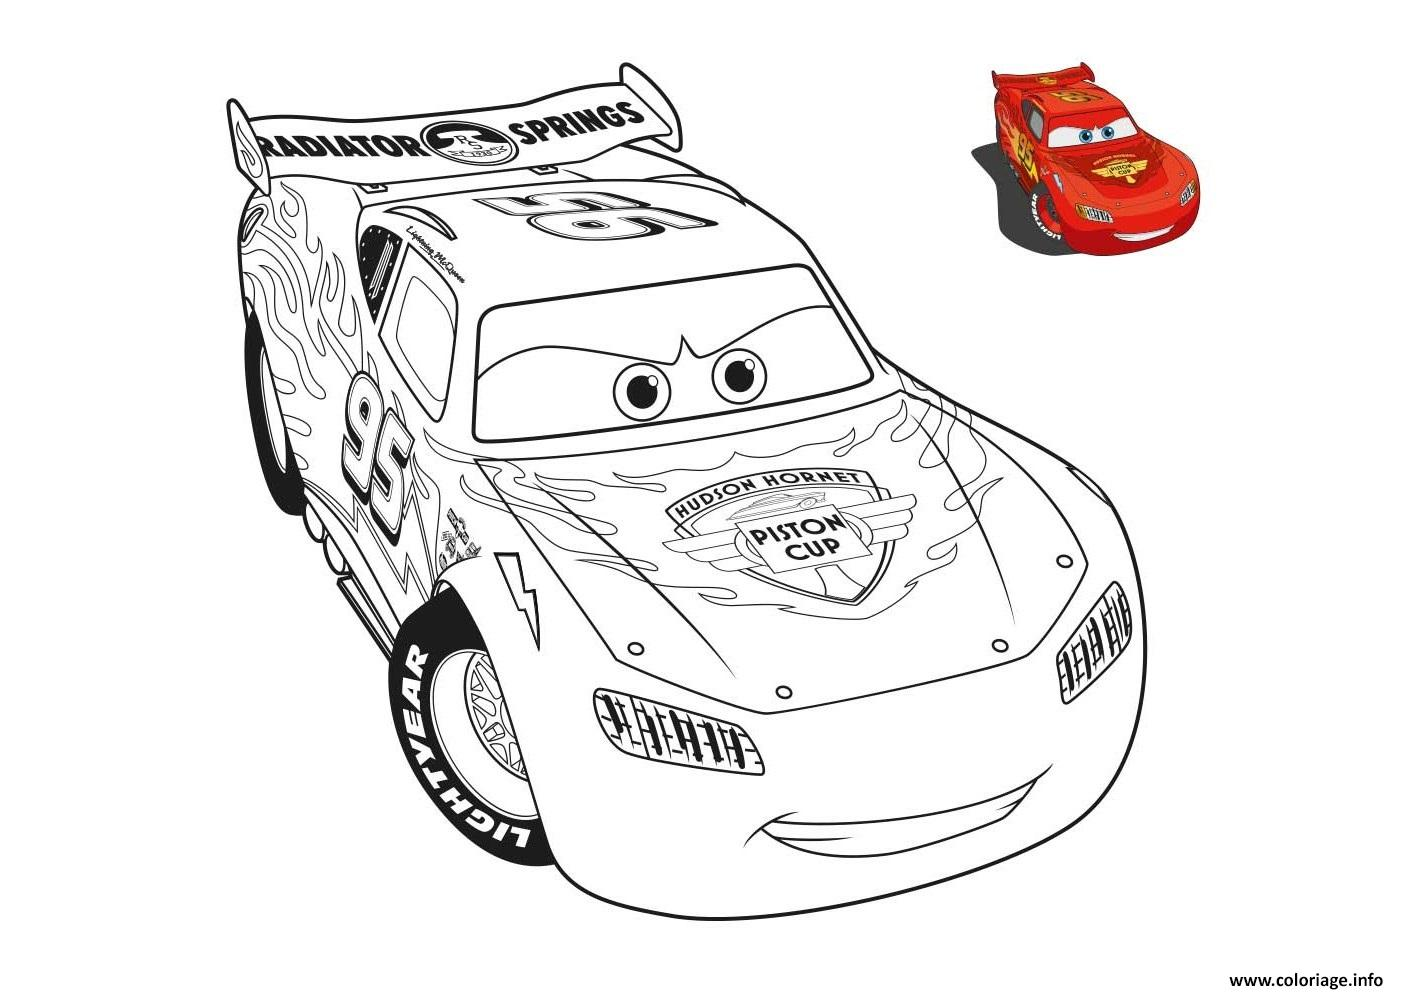 Coloriage cars 2 voiture de course dessin - Image a colorier cars 2 ...